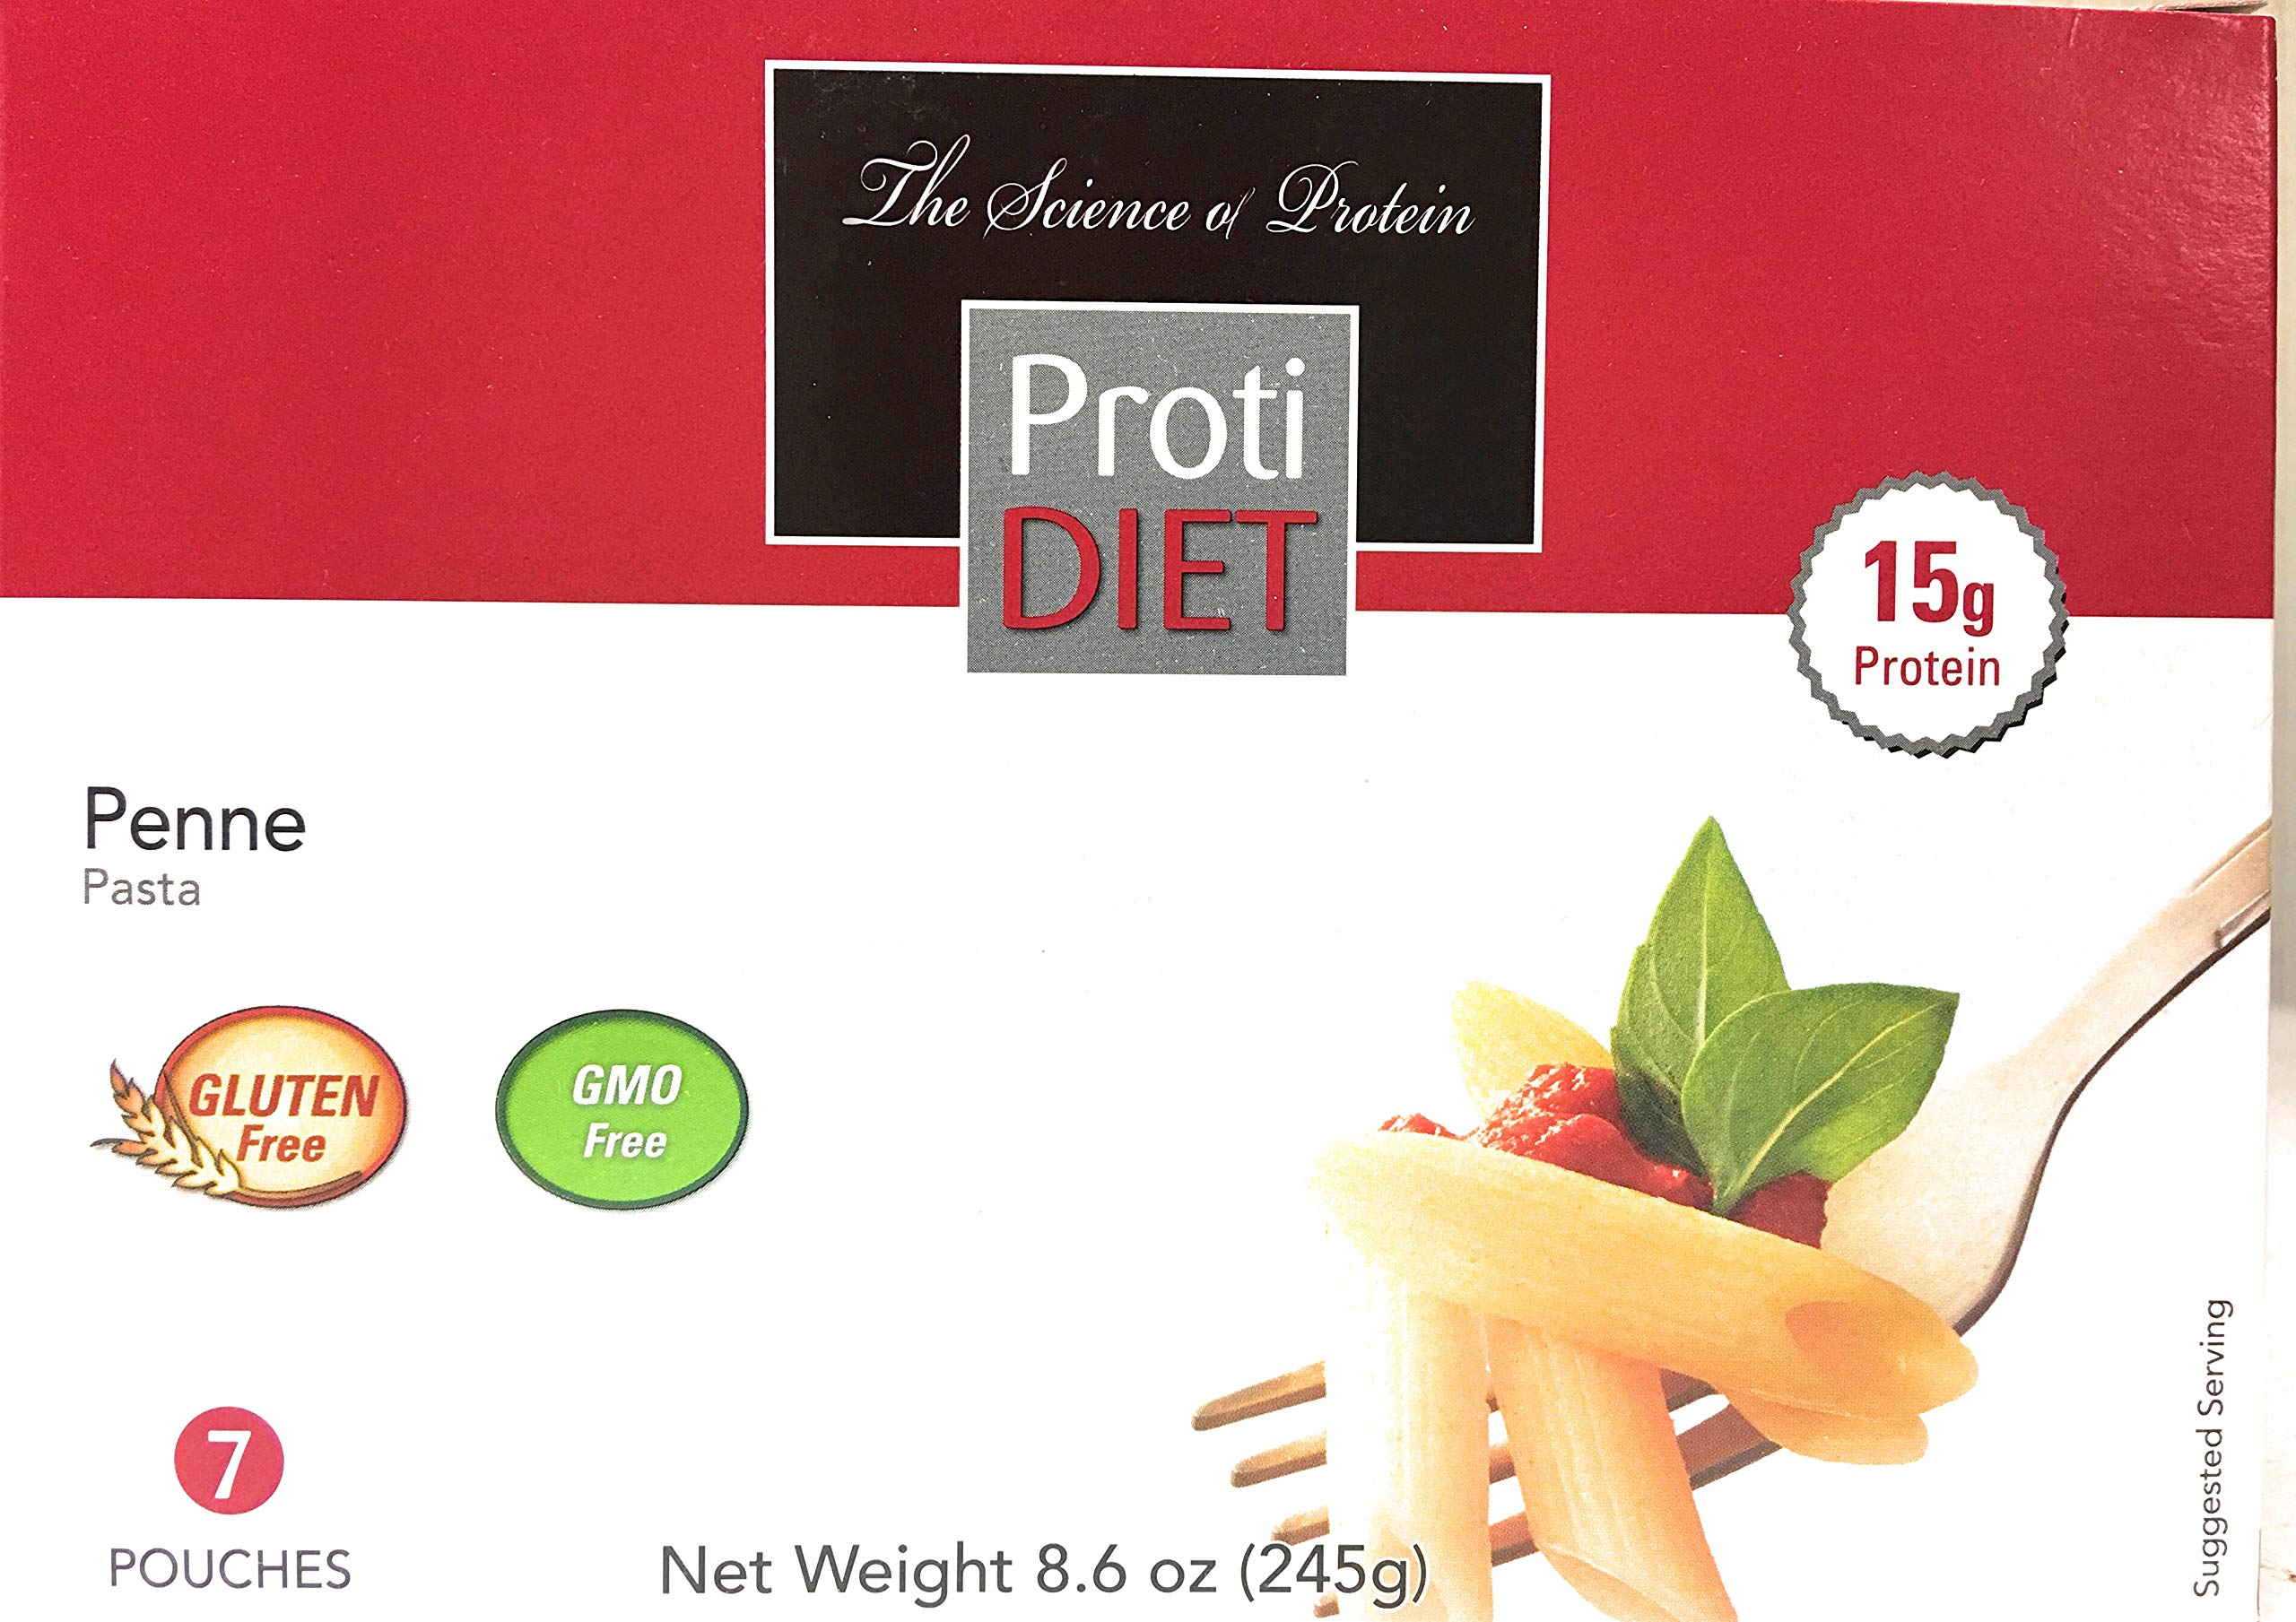 Proti Diet High Protein/Low CARB PENNE Pasta by Being Well Essentials - 7 servings - 15g protien - only 110 calories by Protidiet